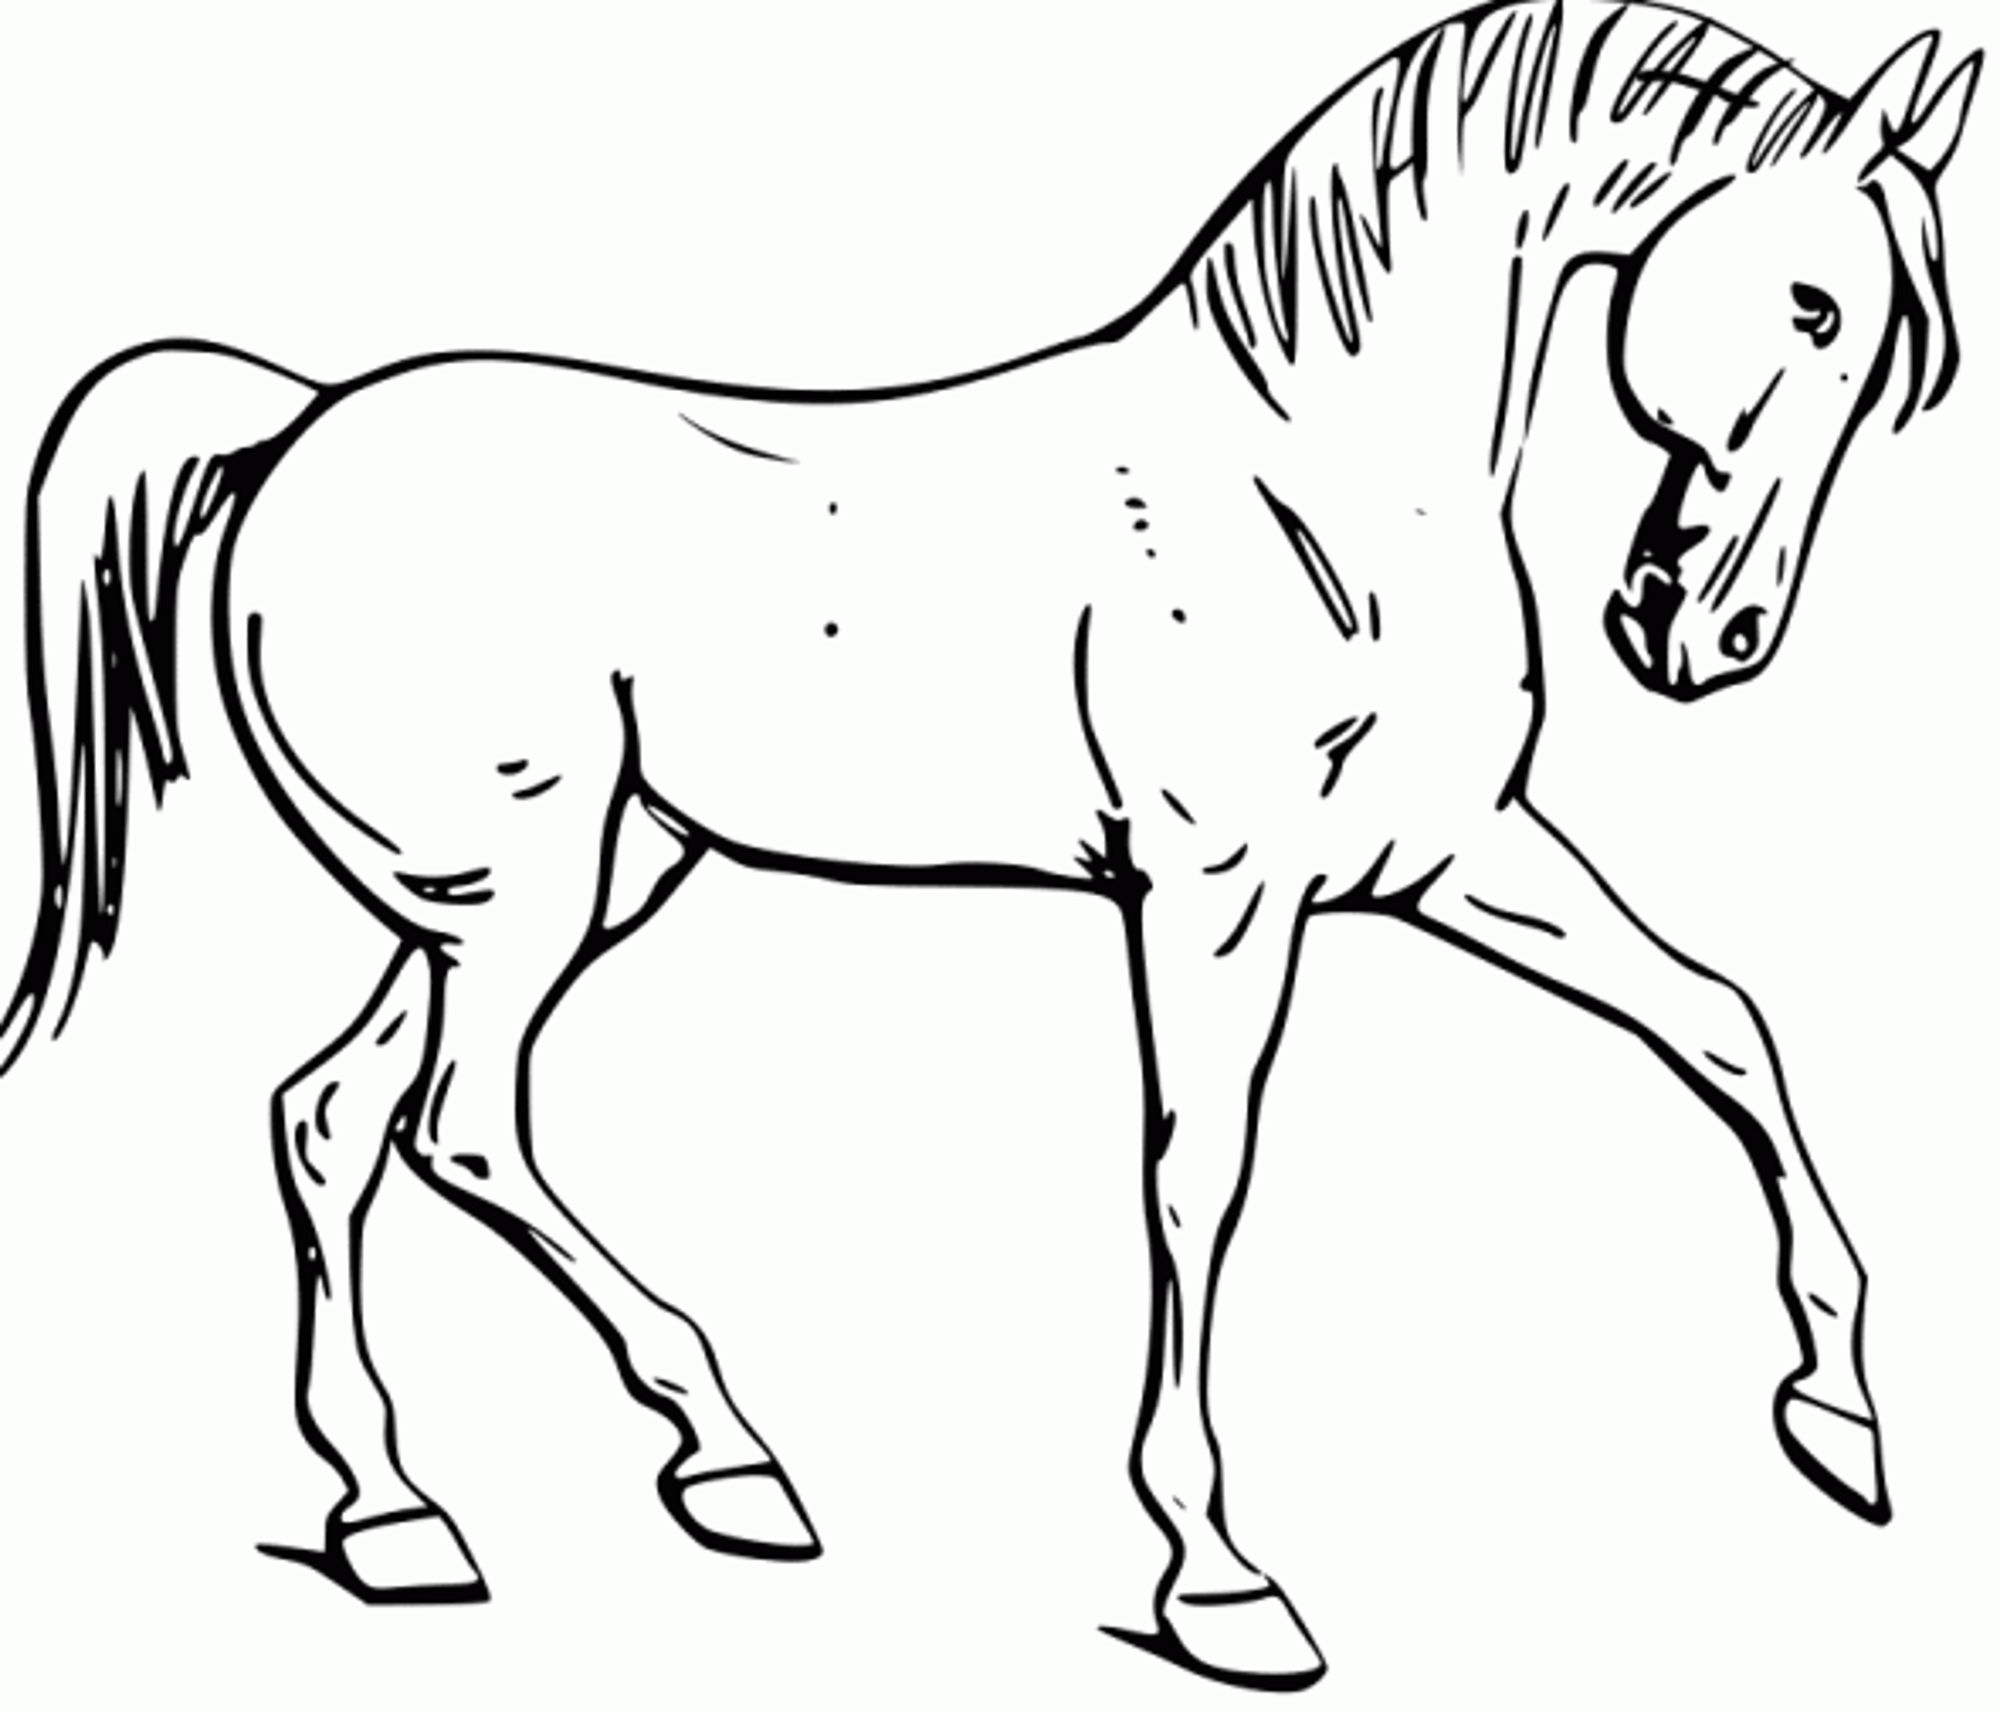 Cool Horse Colouring Pages to Print Coloring O Unknown Printable Of Sturdy Coloring Page A Horse Pages Horses R 3353 Unknown Download